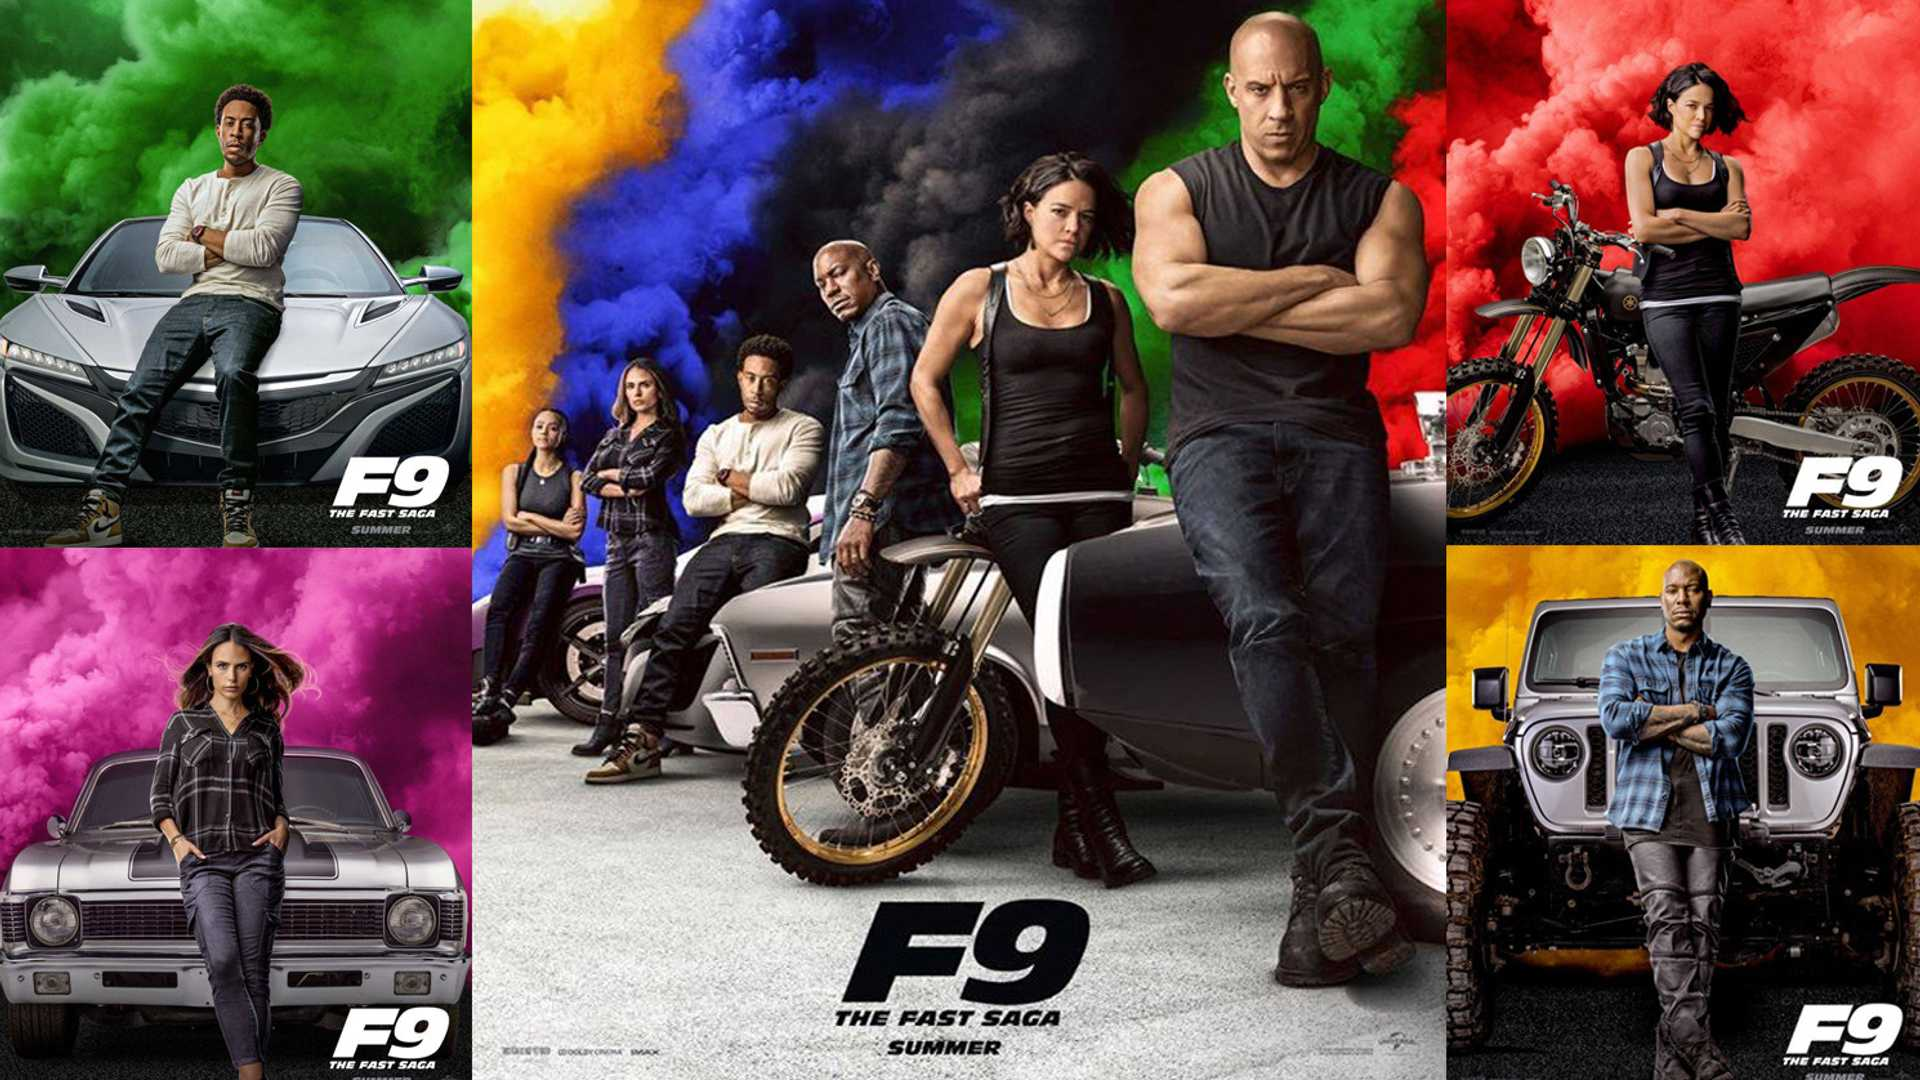 f9 the fast saga trailer movie posters